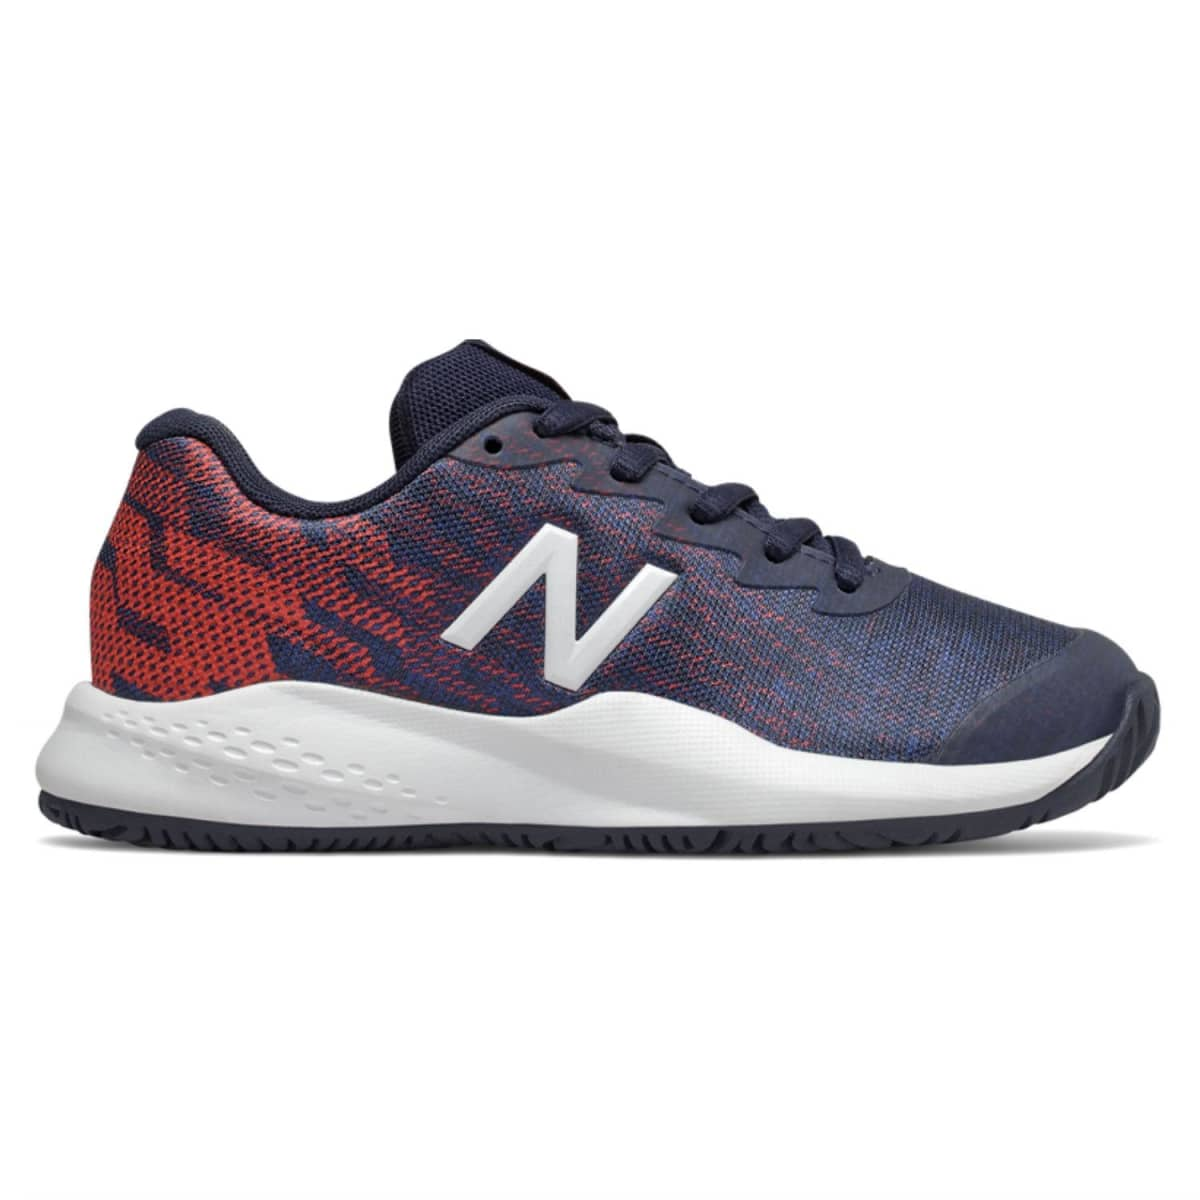 5e0f358598afb Footwear New Balance Products | Sportsmans Warehouse